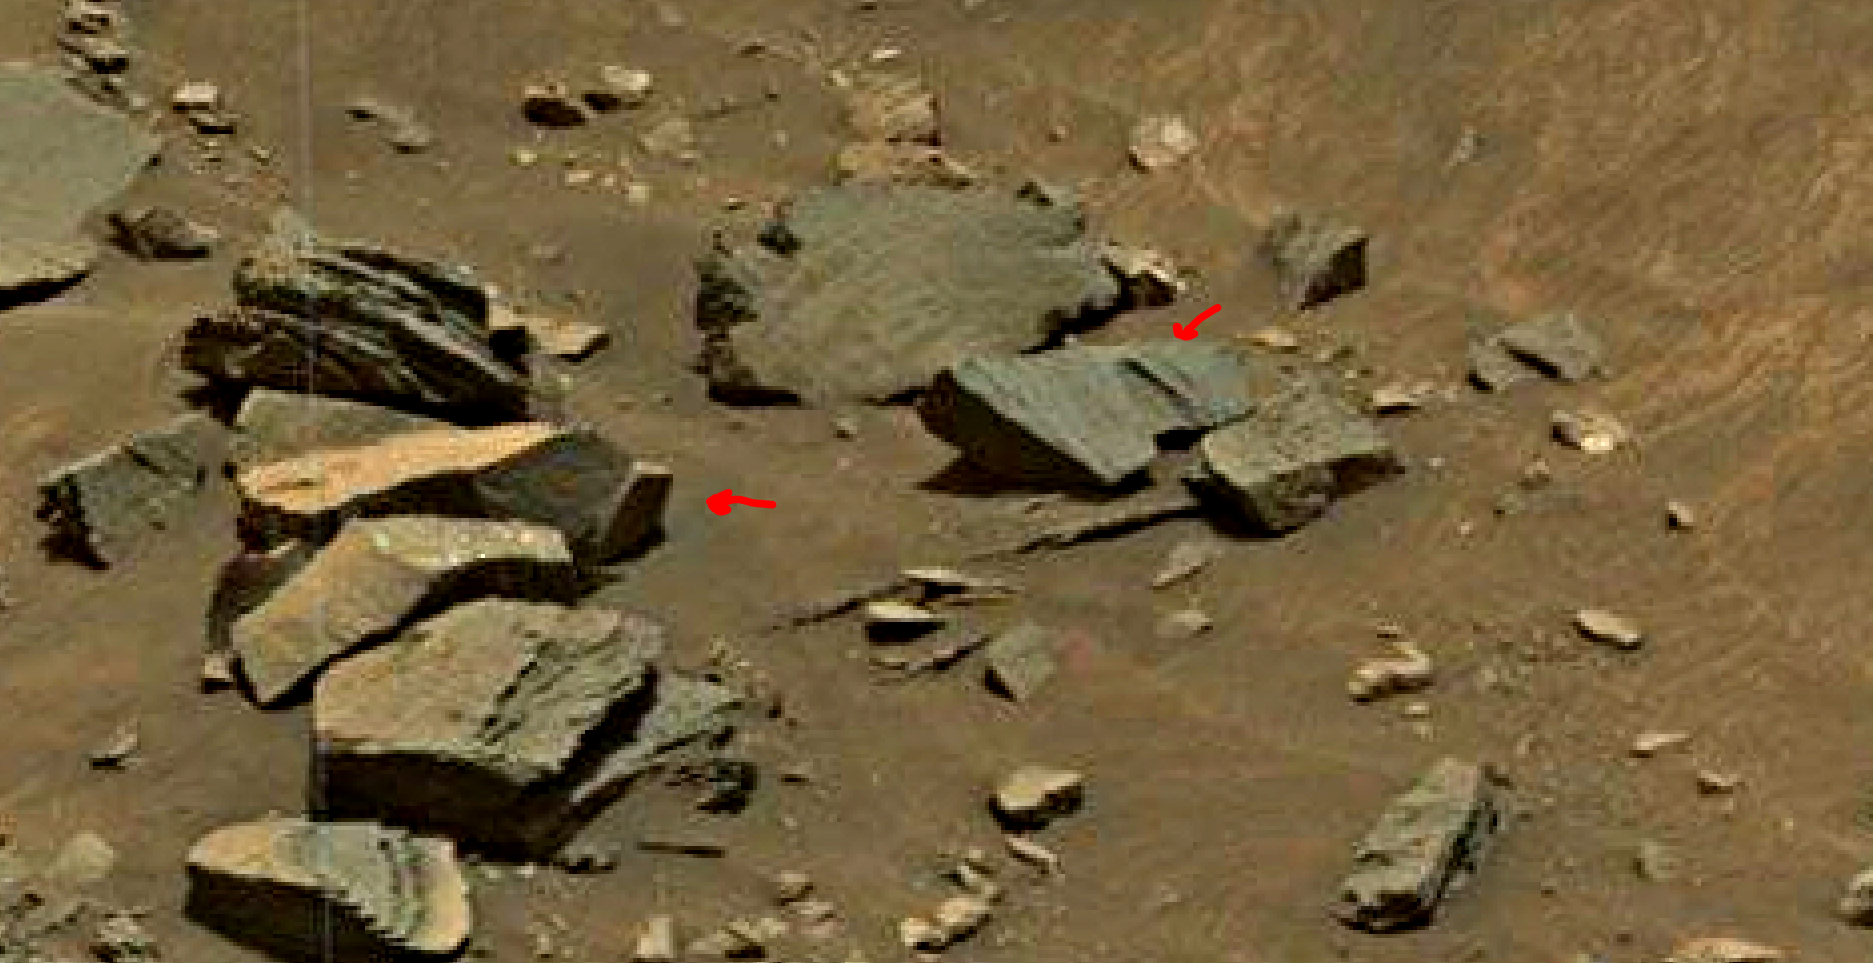 mars-sol-1455-anomaly-artifacts-4a-was-life-on-mars